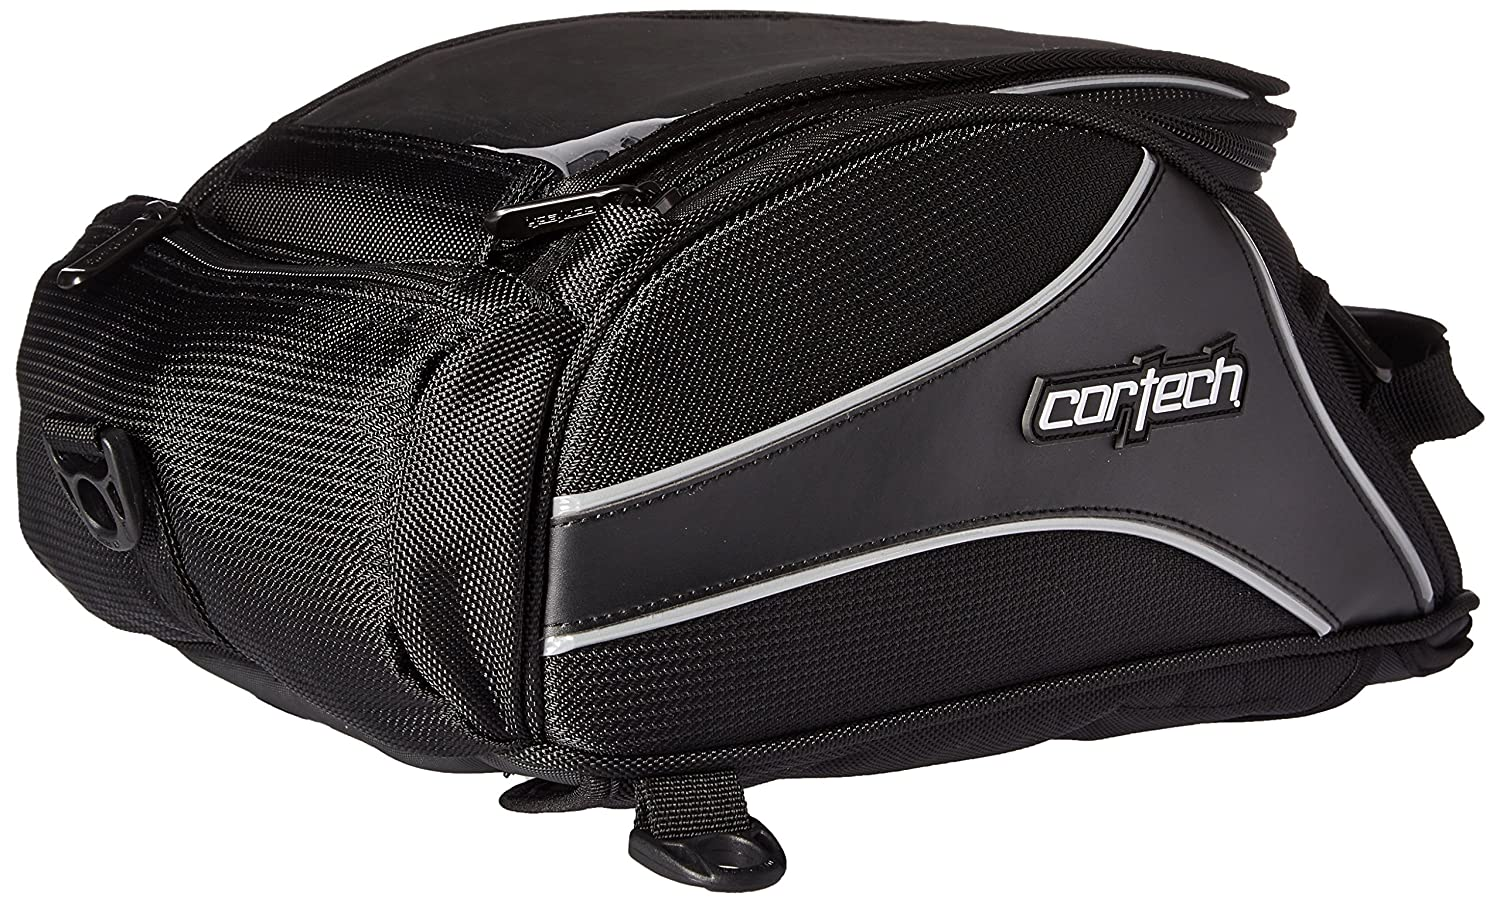 Cortech 8230-0505-12 Black Super 2.0 Magnetic Mount Tank Bag